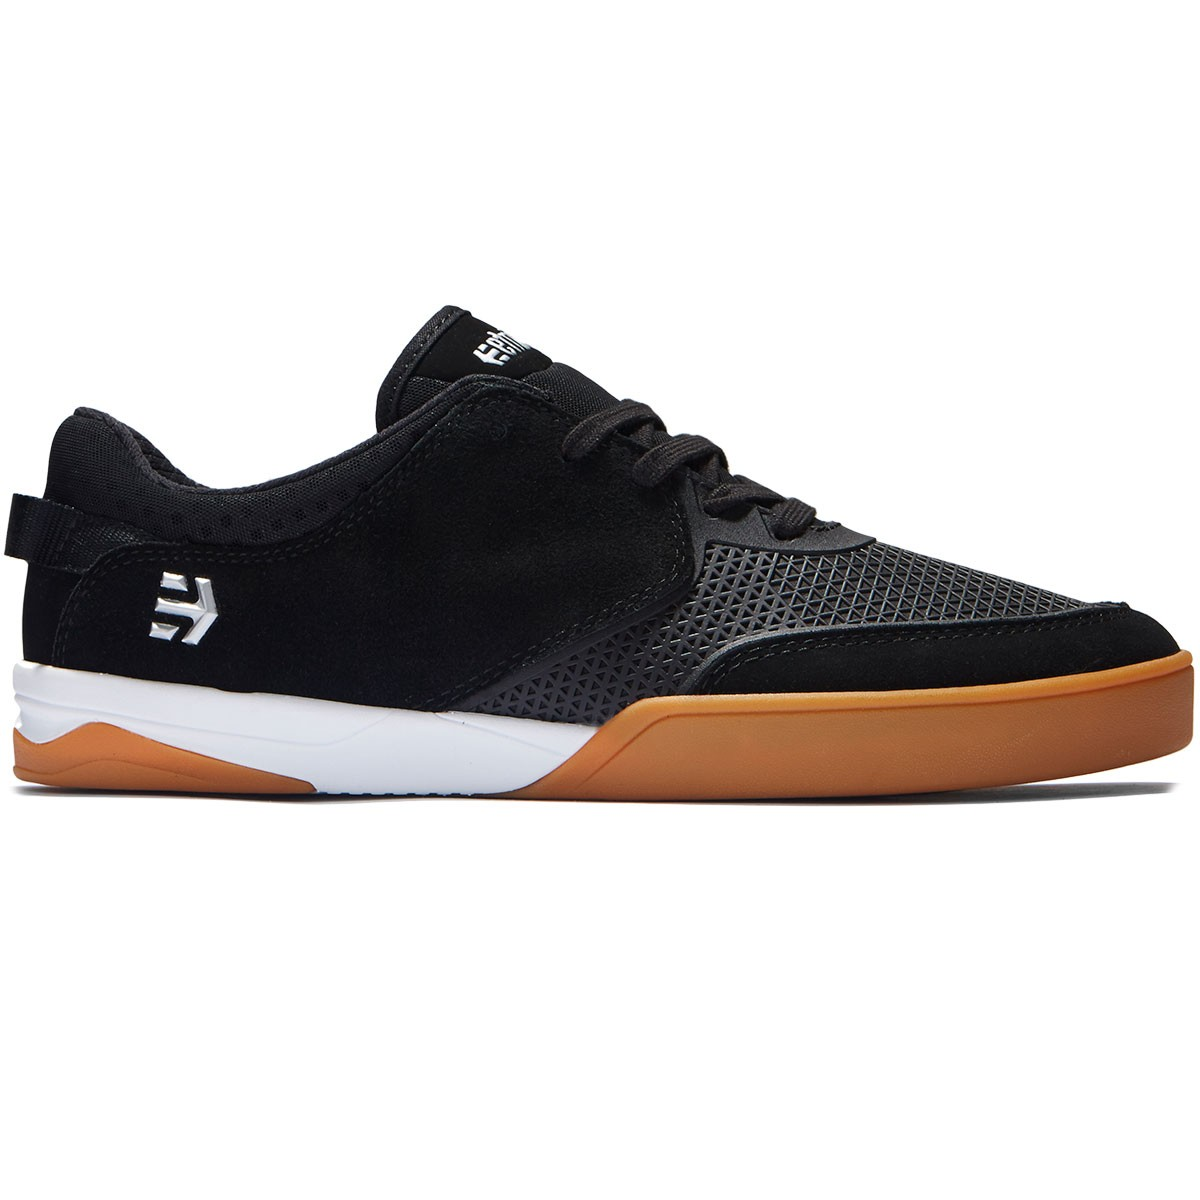 Etnies Shoes Helix Black White Gum Barney Page New FREE POST Skateboard Sneakers